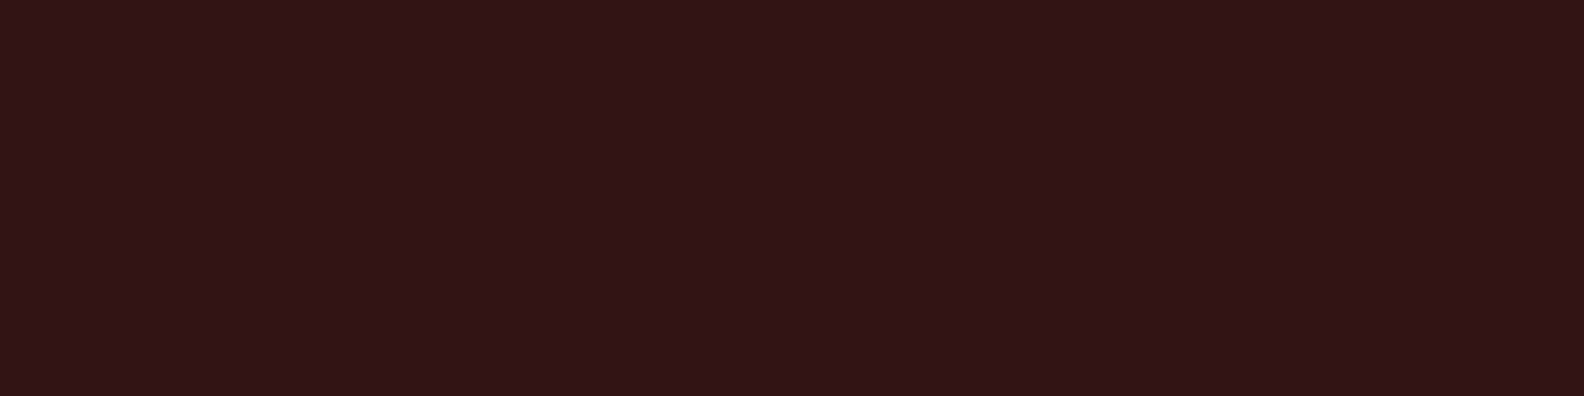 1584x396 Seal Brown Solid Color Background